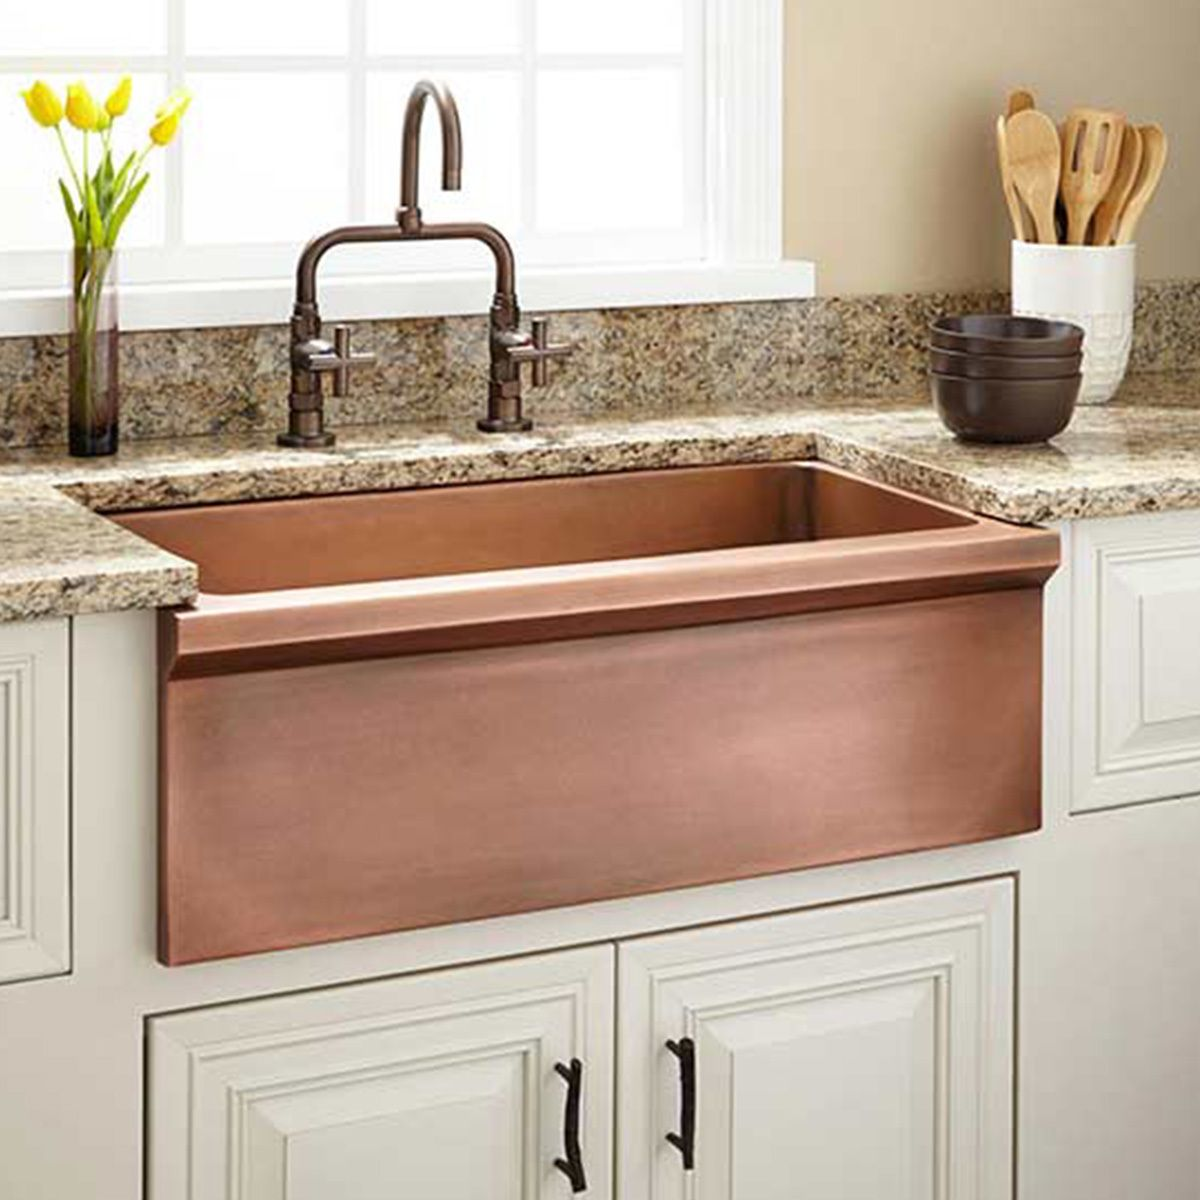 65 Modern Farmhouse Kitchen Sink Design Decor Ideas